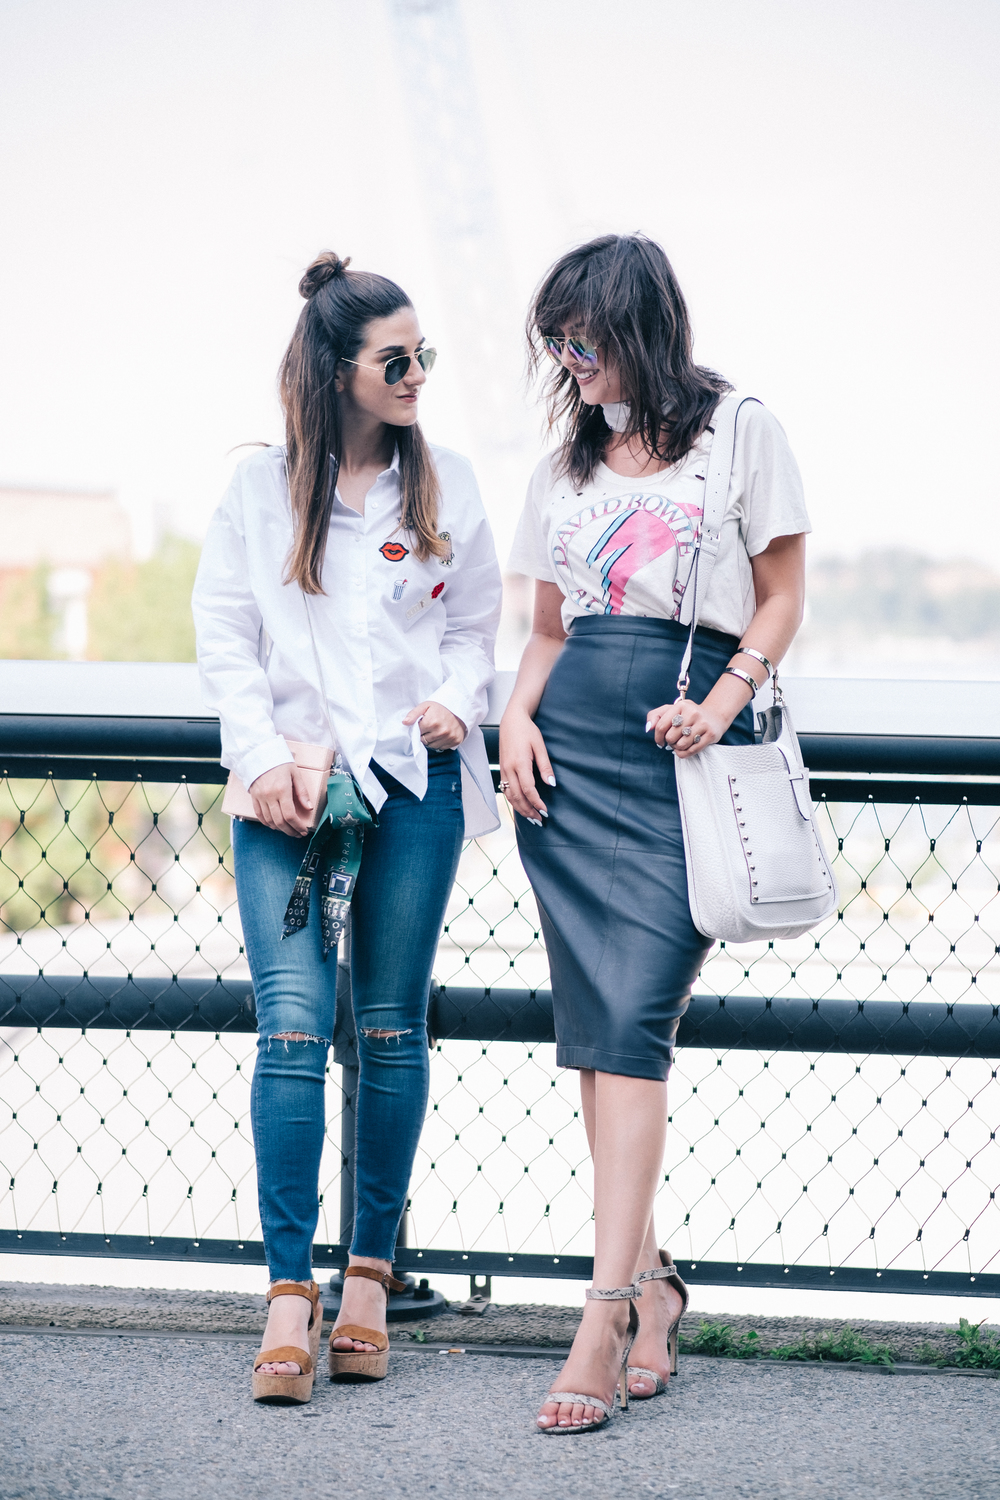 Photoshoot Collab With Lexicon Of Style How To Make Blogger Friends Louboutins & Love Fashion Blog Esther Santer NYC Street Style Blogger Outfit OOTD Trendy Oversized White Dress Shirt Patches Ripped Jeans Denim Zara Scarf Heels Wedges Bag Sunglasses.jpg